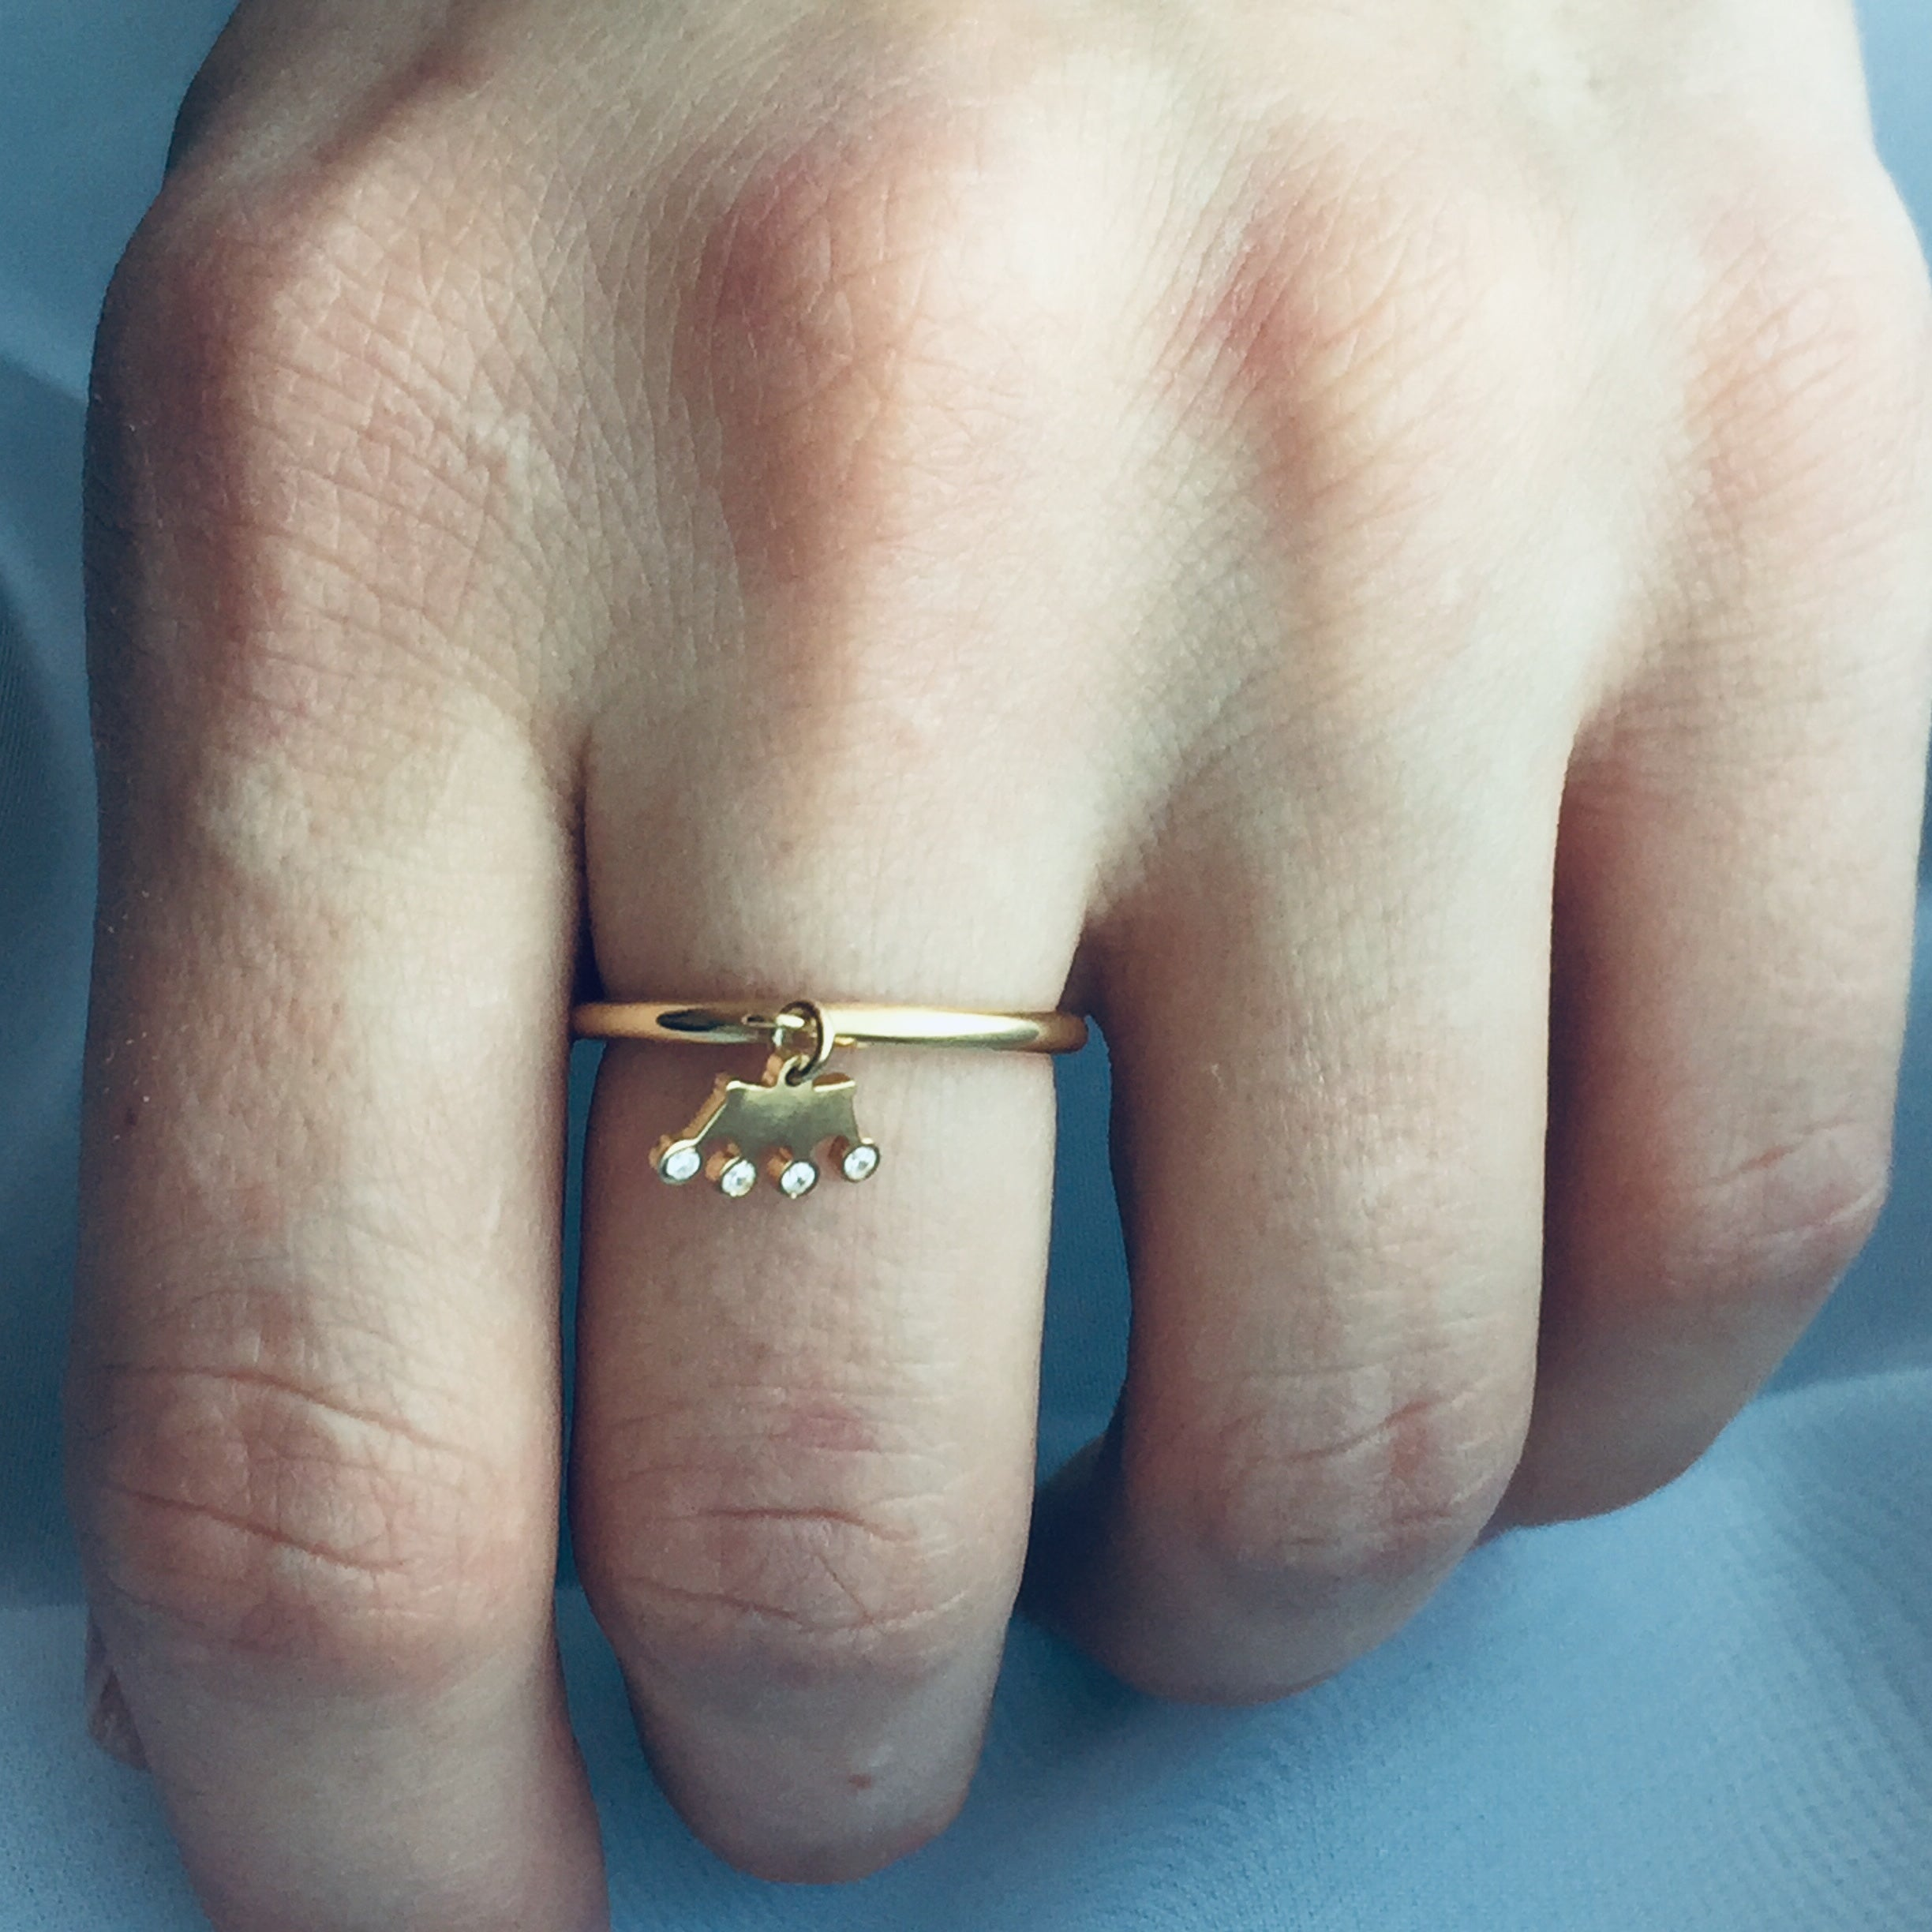 CROWN CHARM ring - BYVELA designer jewellery in silver and gold